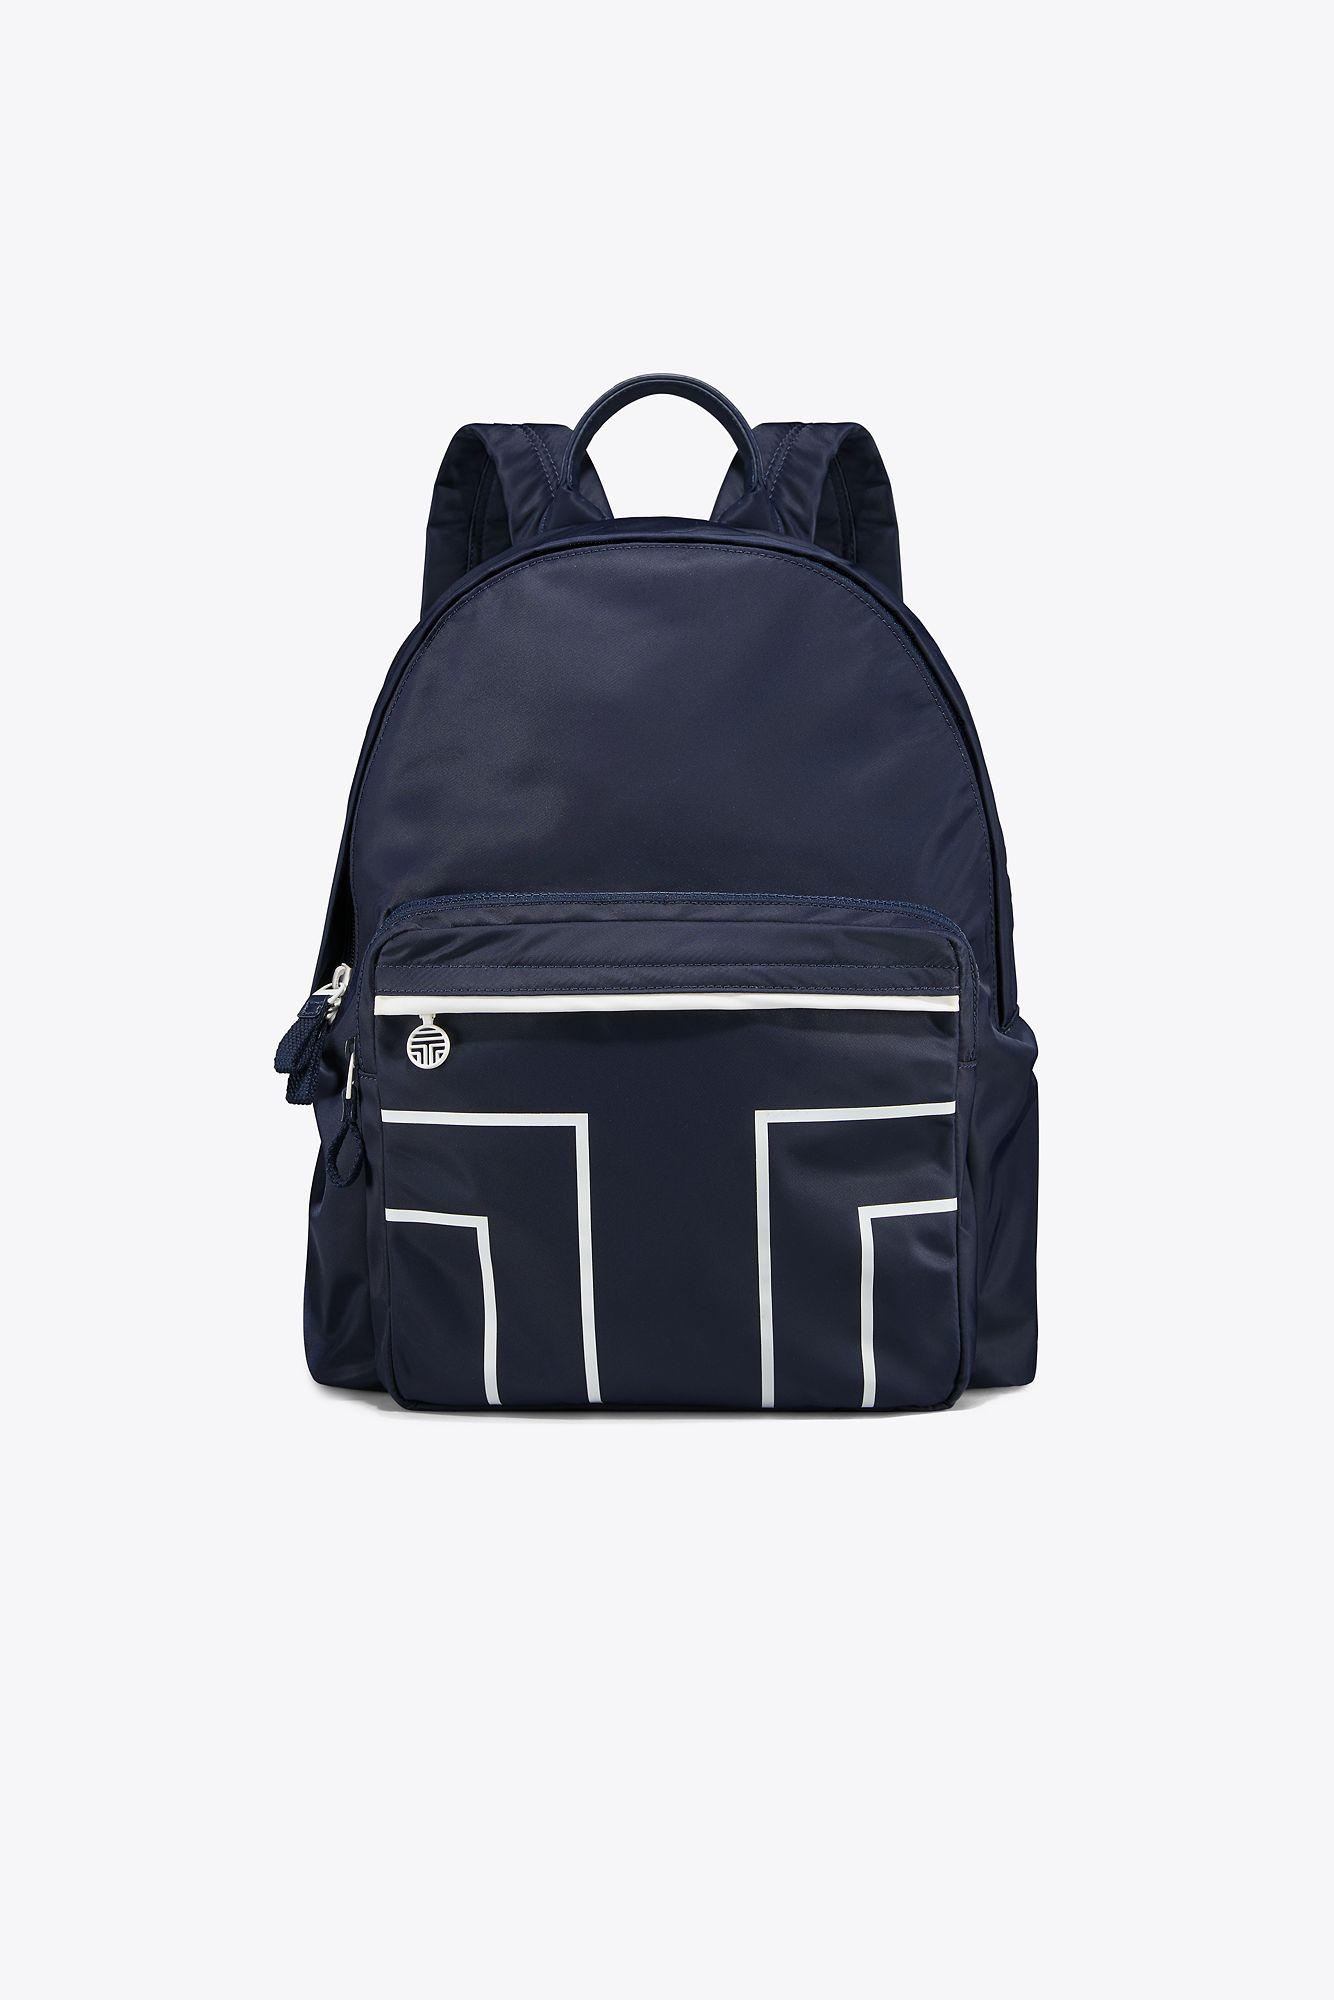 ed58984eb80 Lyst - Tory Sport Nylon Graphic-t Backpack in Blue